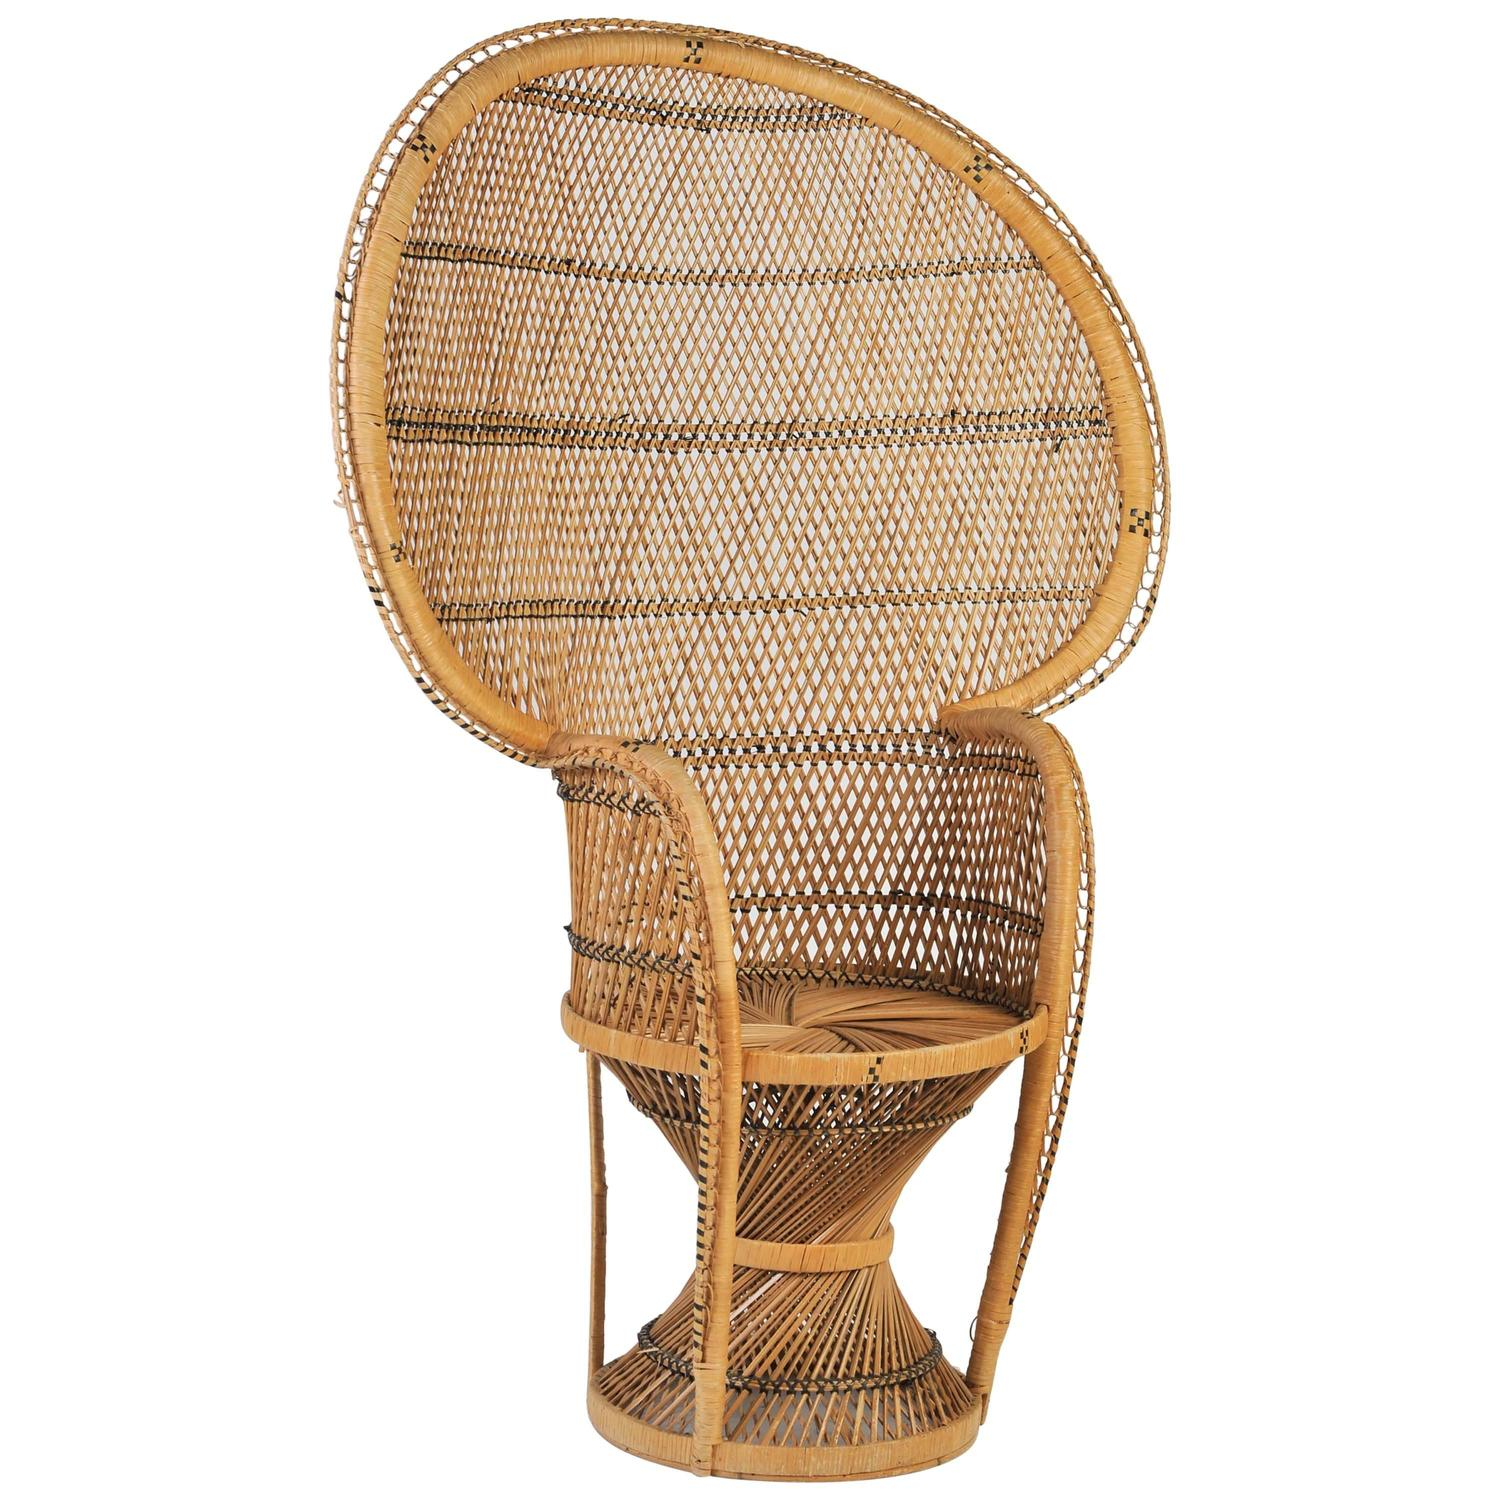 Wicker Chairs 101 For Sale at 1stdibs